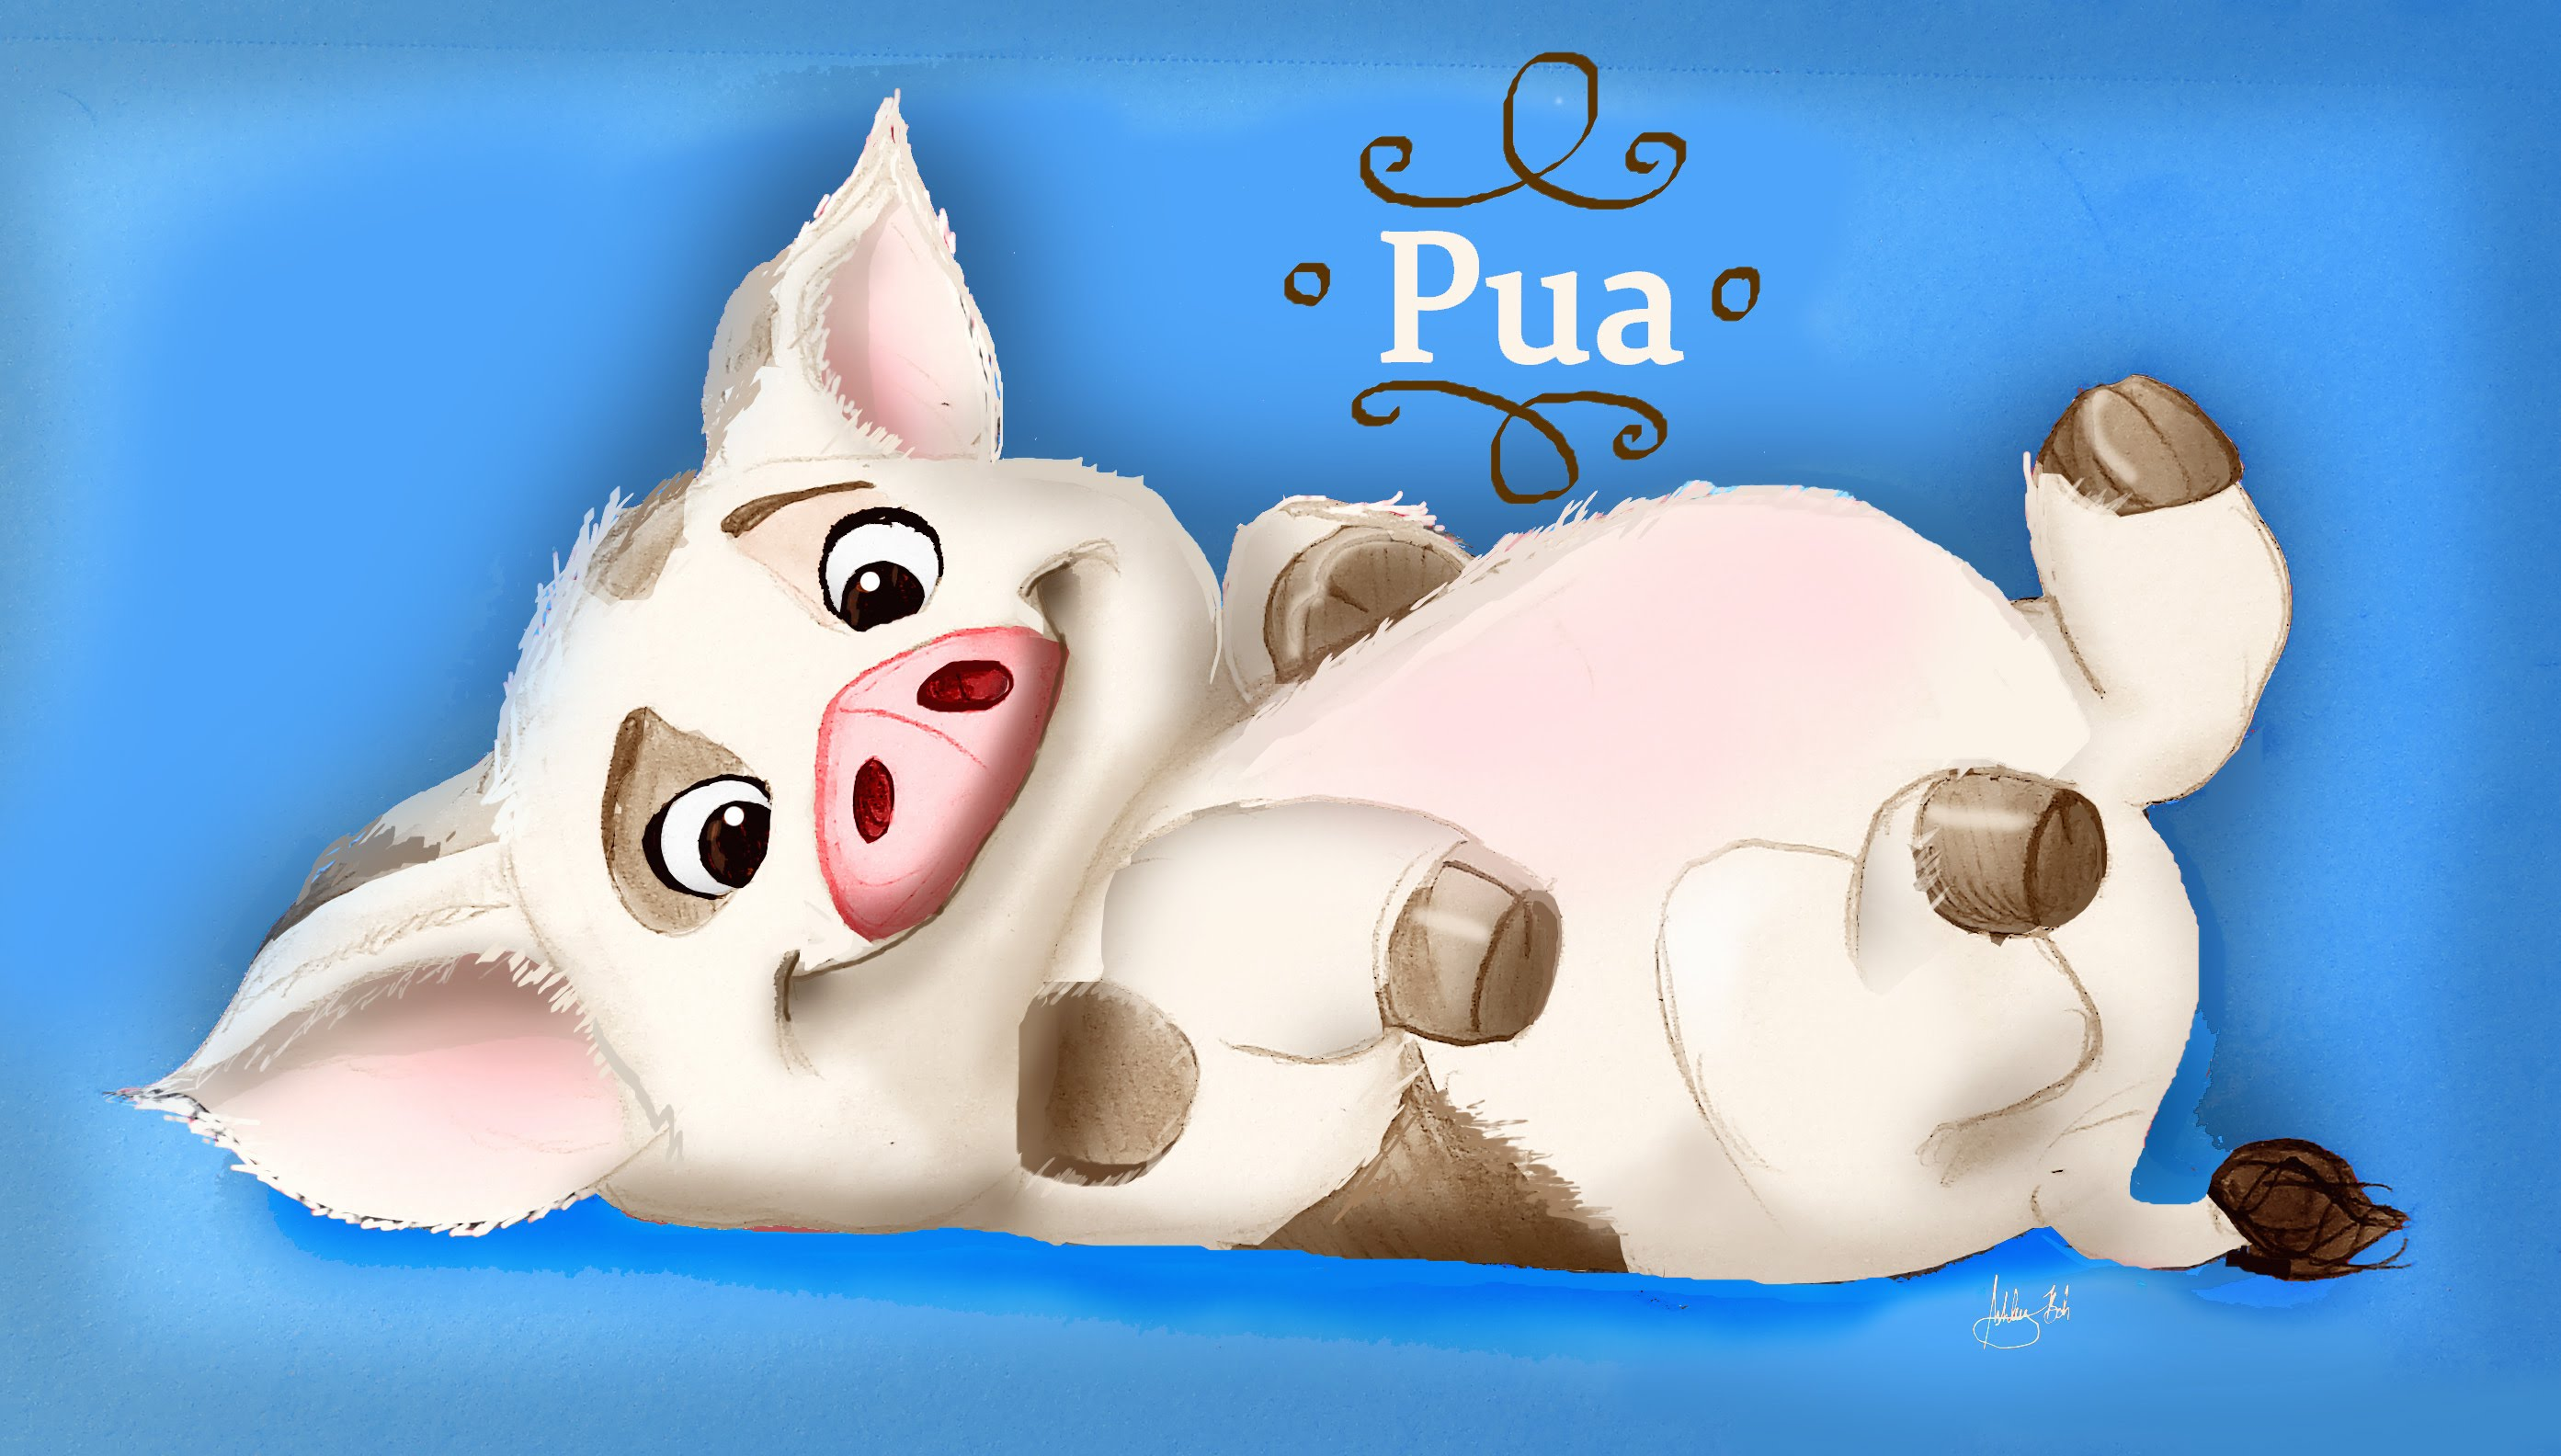 Moana clipart pua. Speed drawing from disney